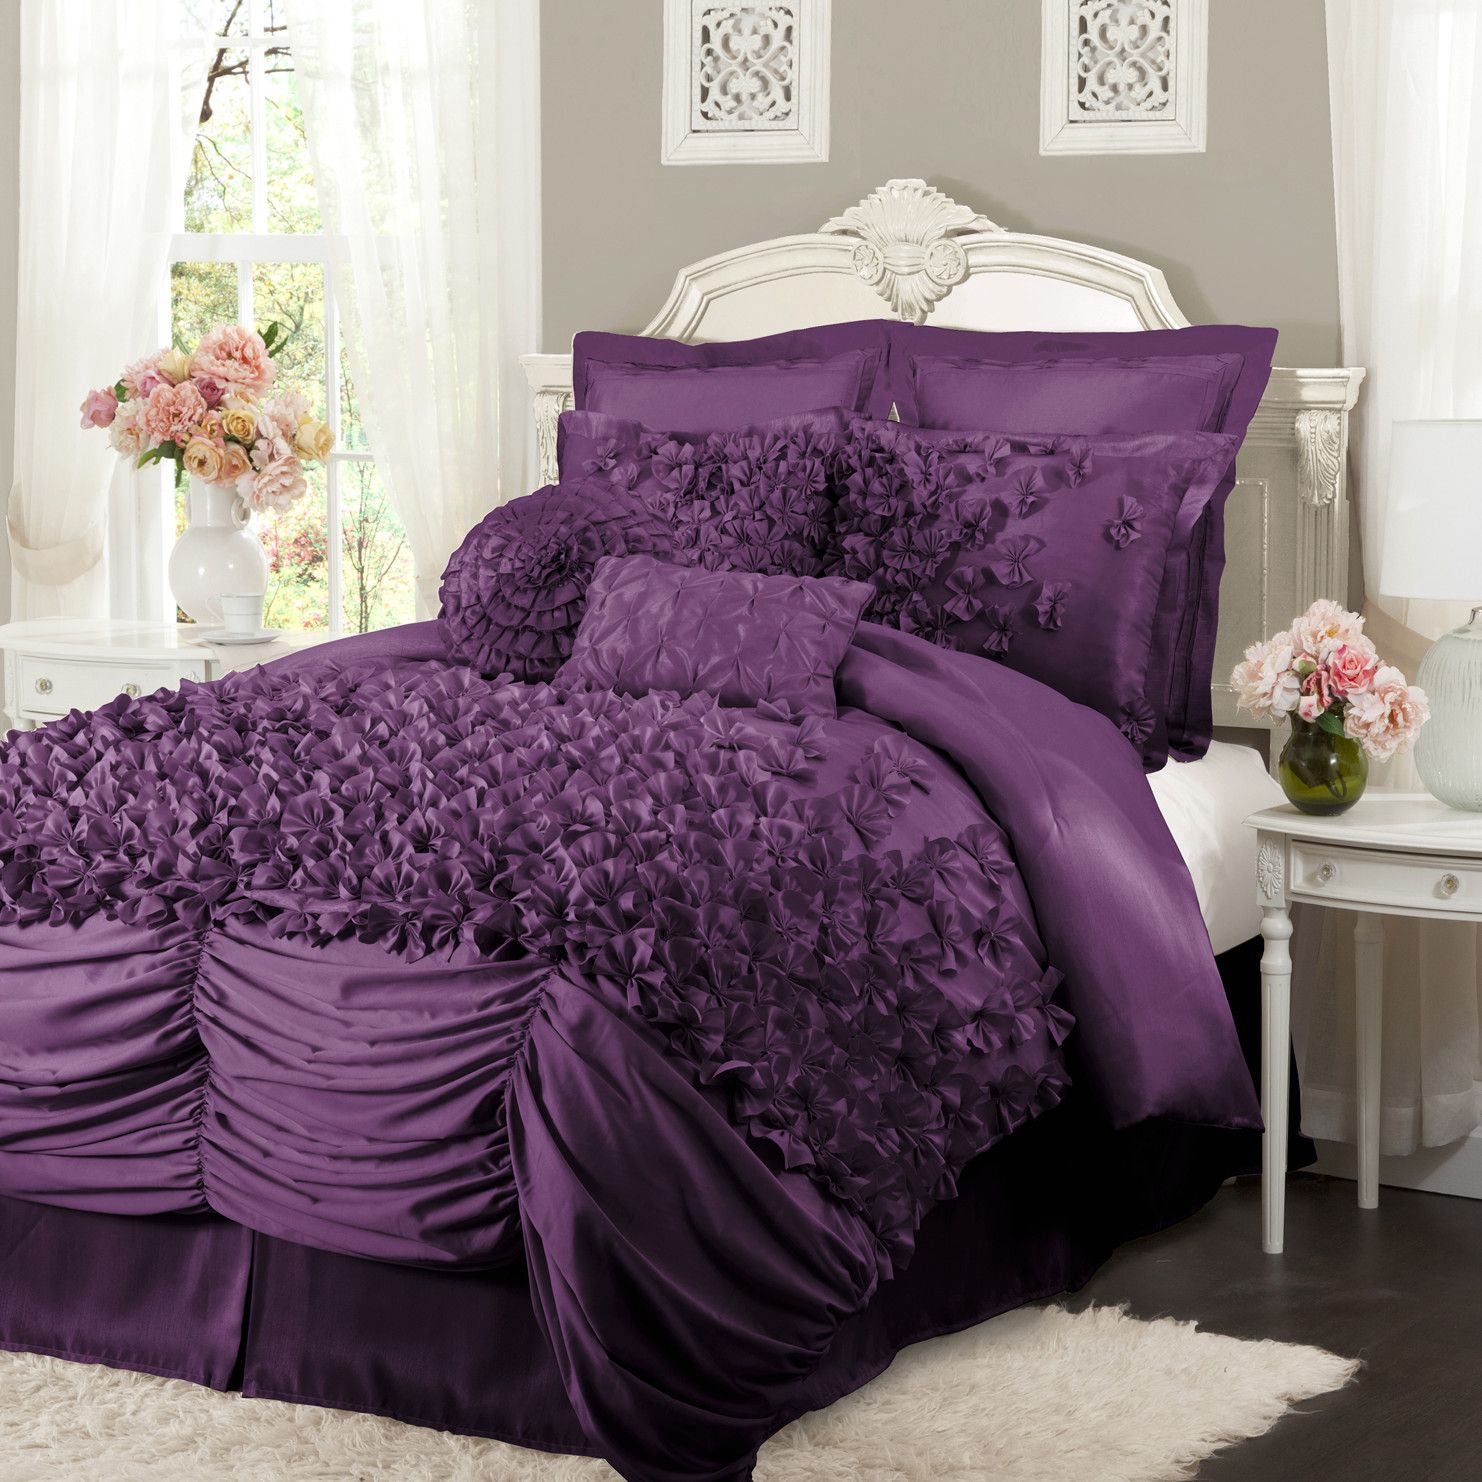 Black and purple bed sheets -  Purple Bedding Lush Decor Lucia 4 Piece Comforter Set Omg My